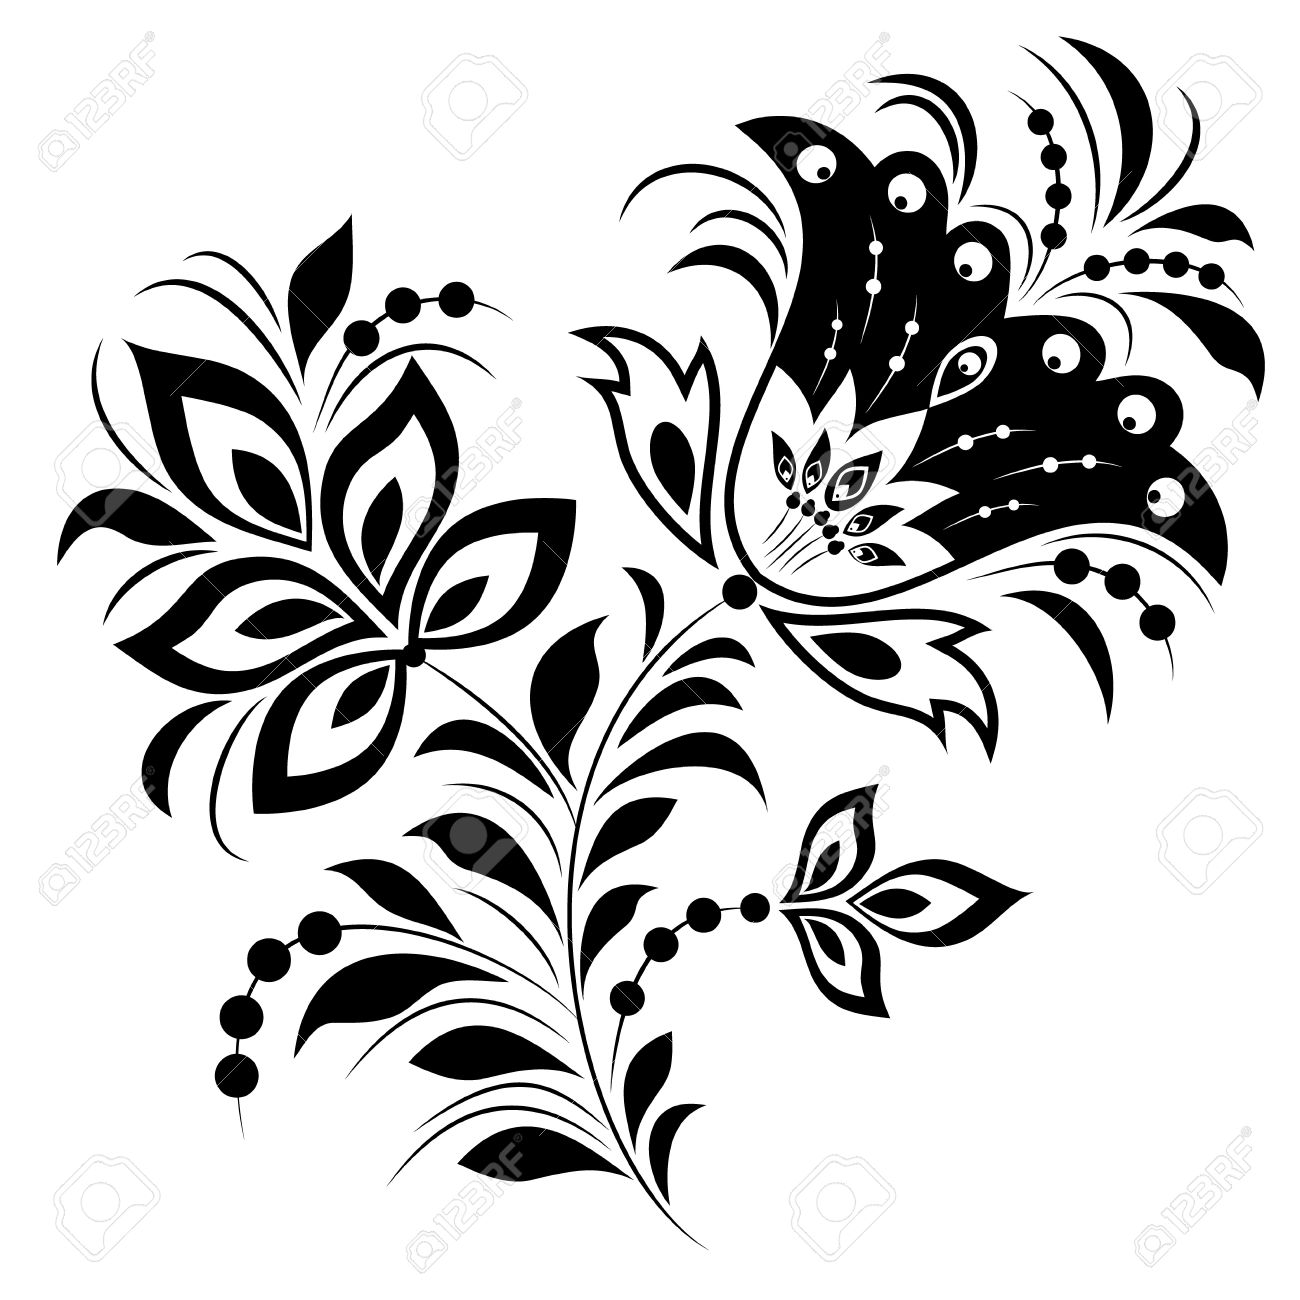 illustration of abstract flower isolated on white background stock vector 12077537